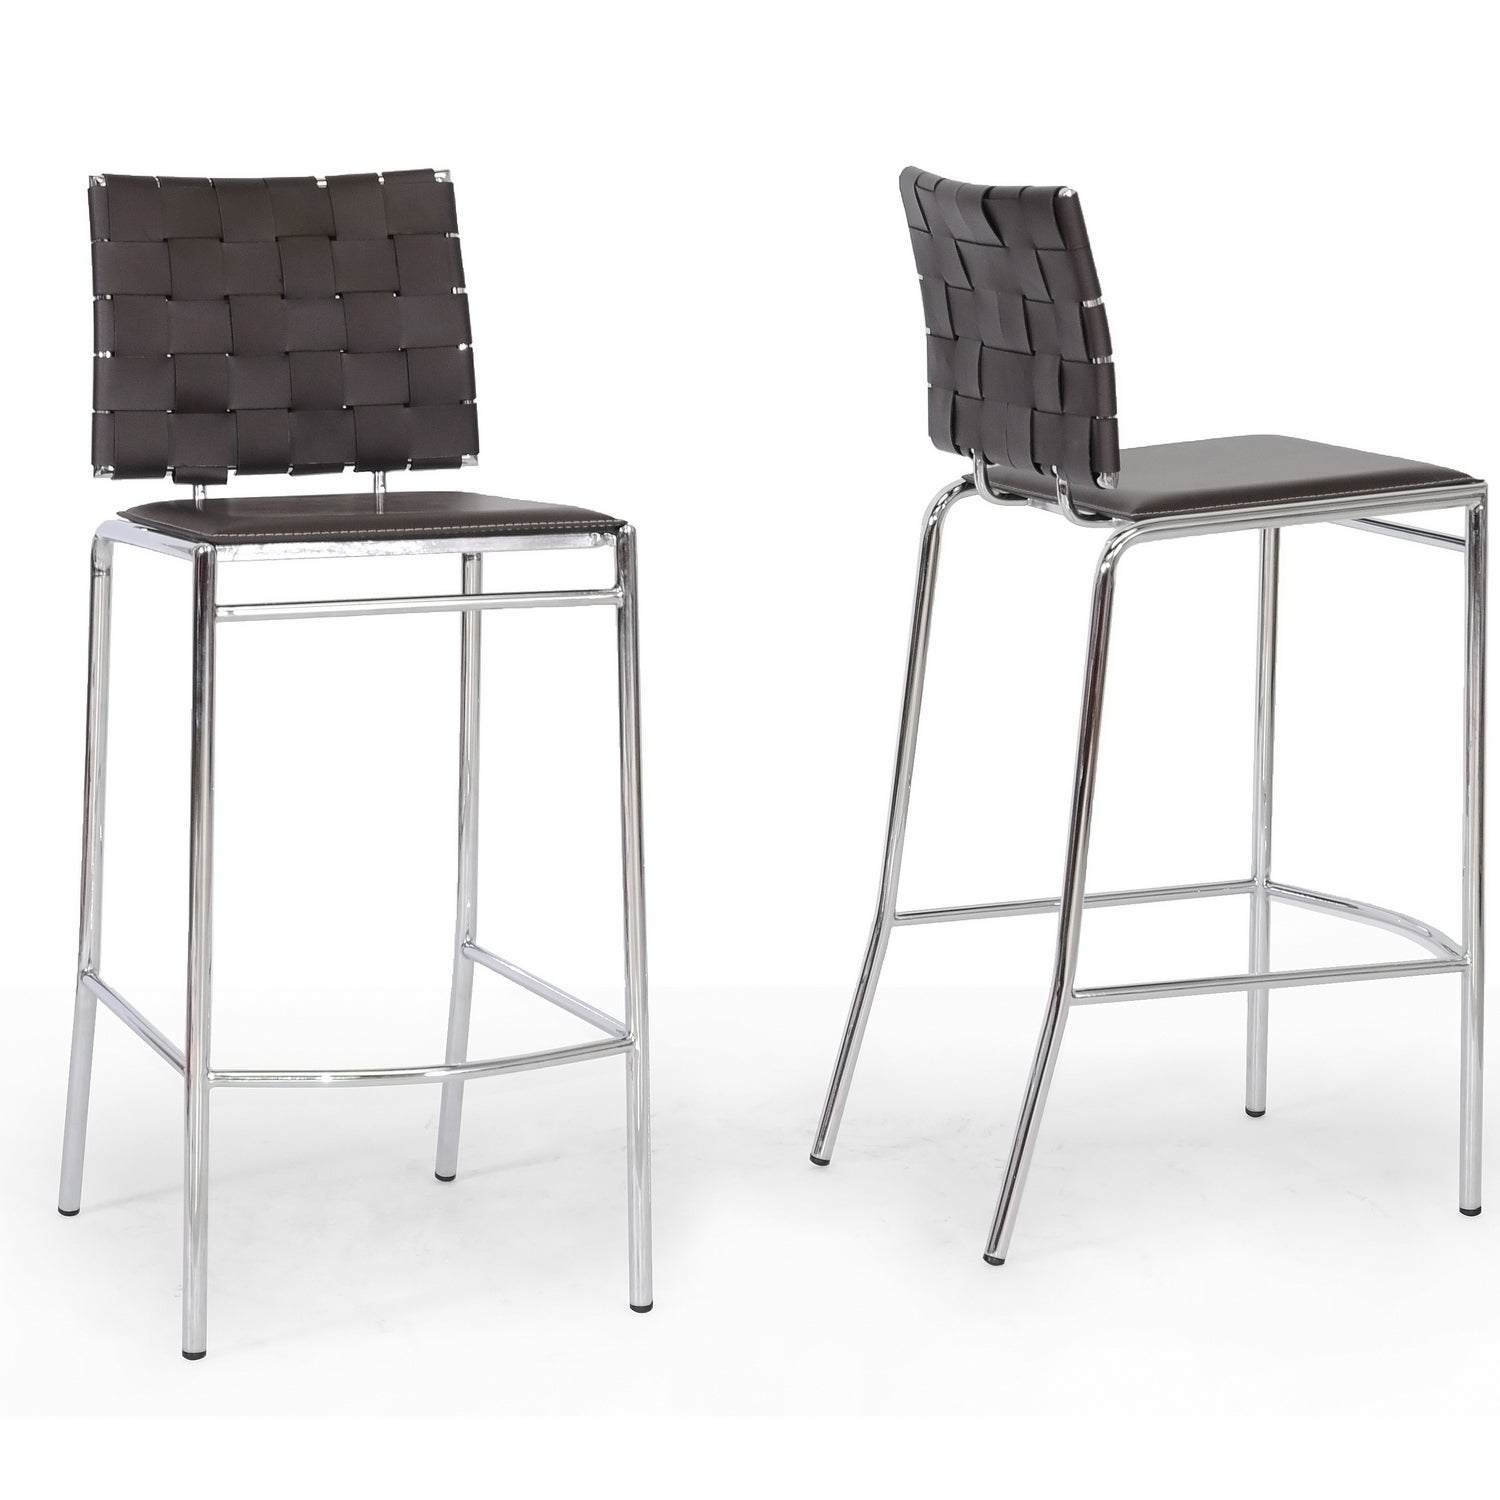 Vittoria Brown Leather Modern Bar Stools (Set of 2)